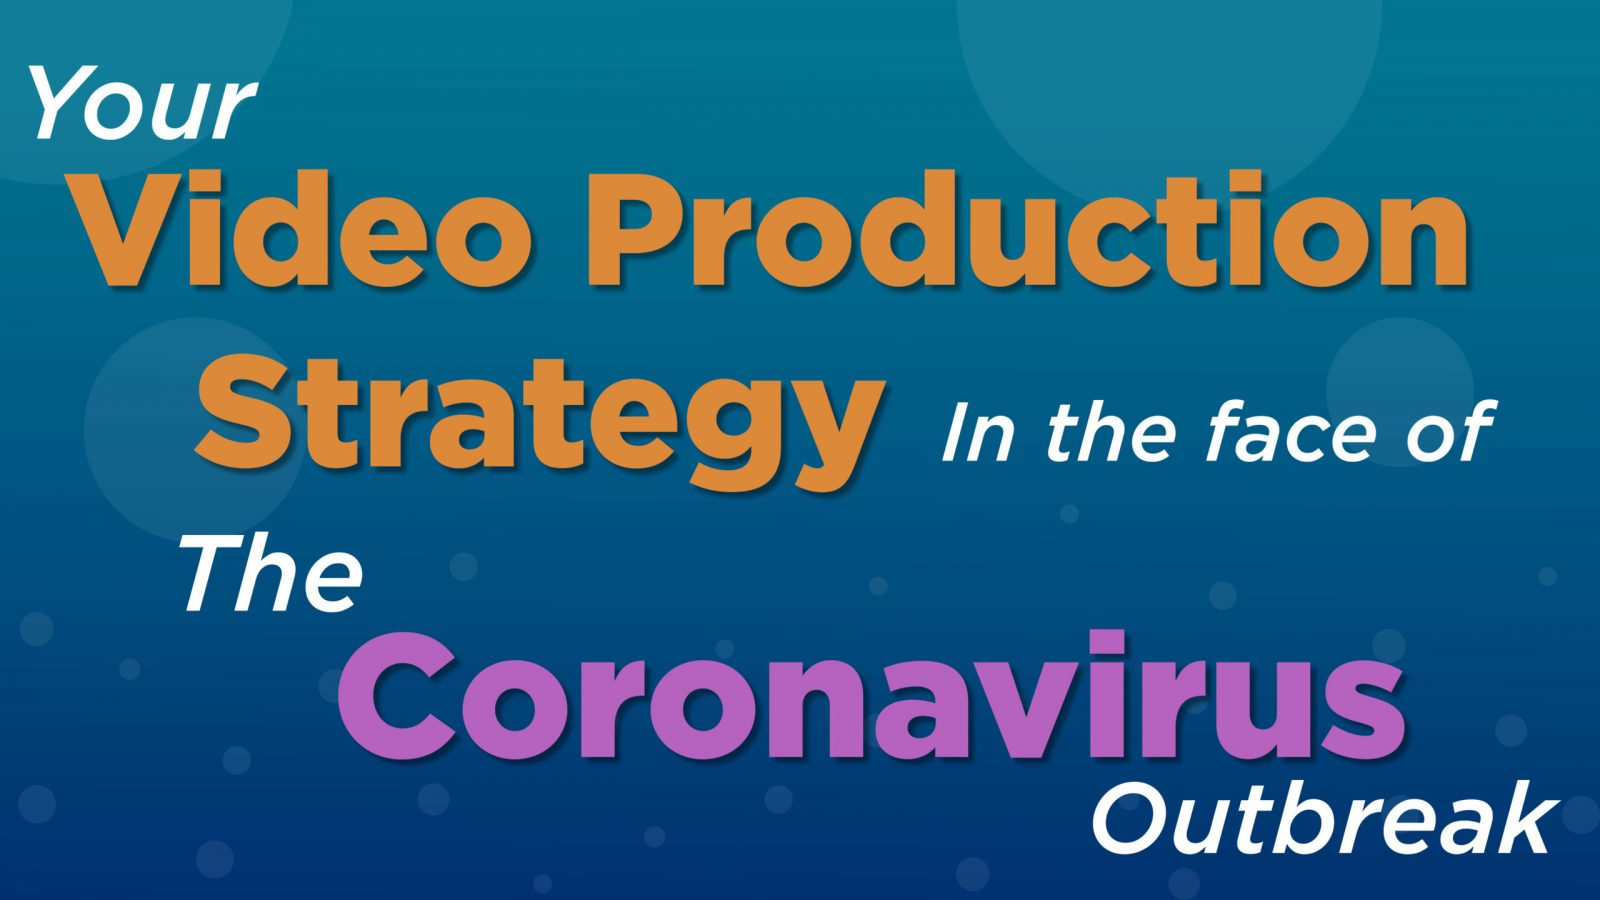 YOUR VIDEO PRODUCTION STRATEGY IN THE FACE OF THE CORONAVIRUS OUTBREAK